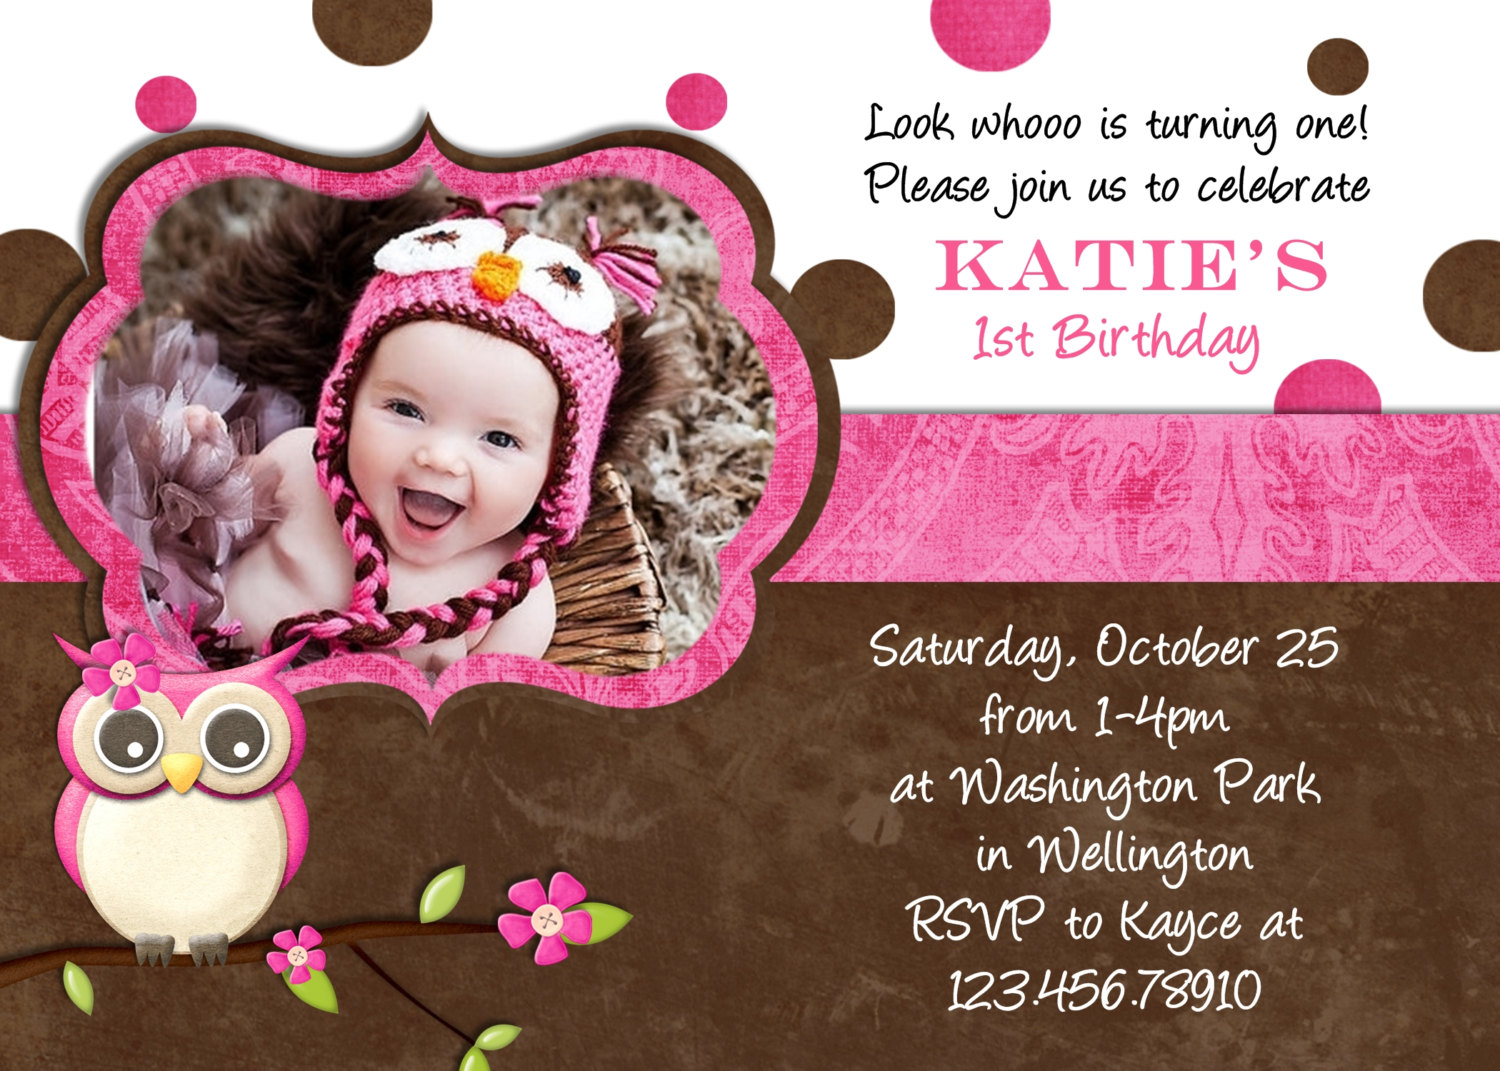 happy birthday invitation card design ; birthday-invitations-cards-and-get-inspiration-to-create-the-Birthday-invitation-design-of-your-dreams-1